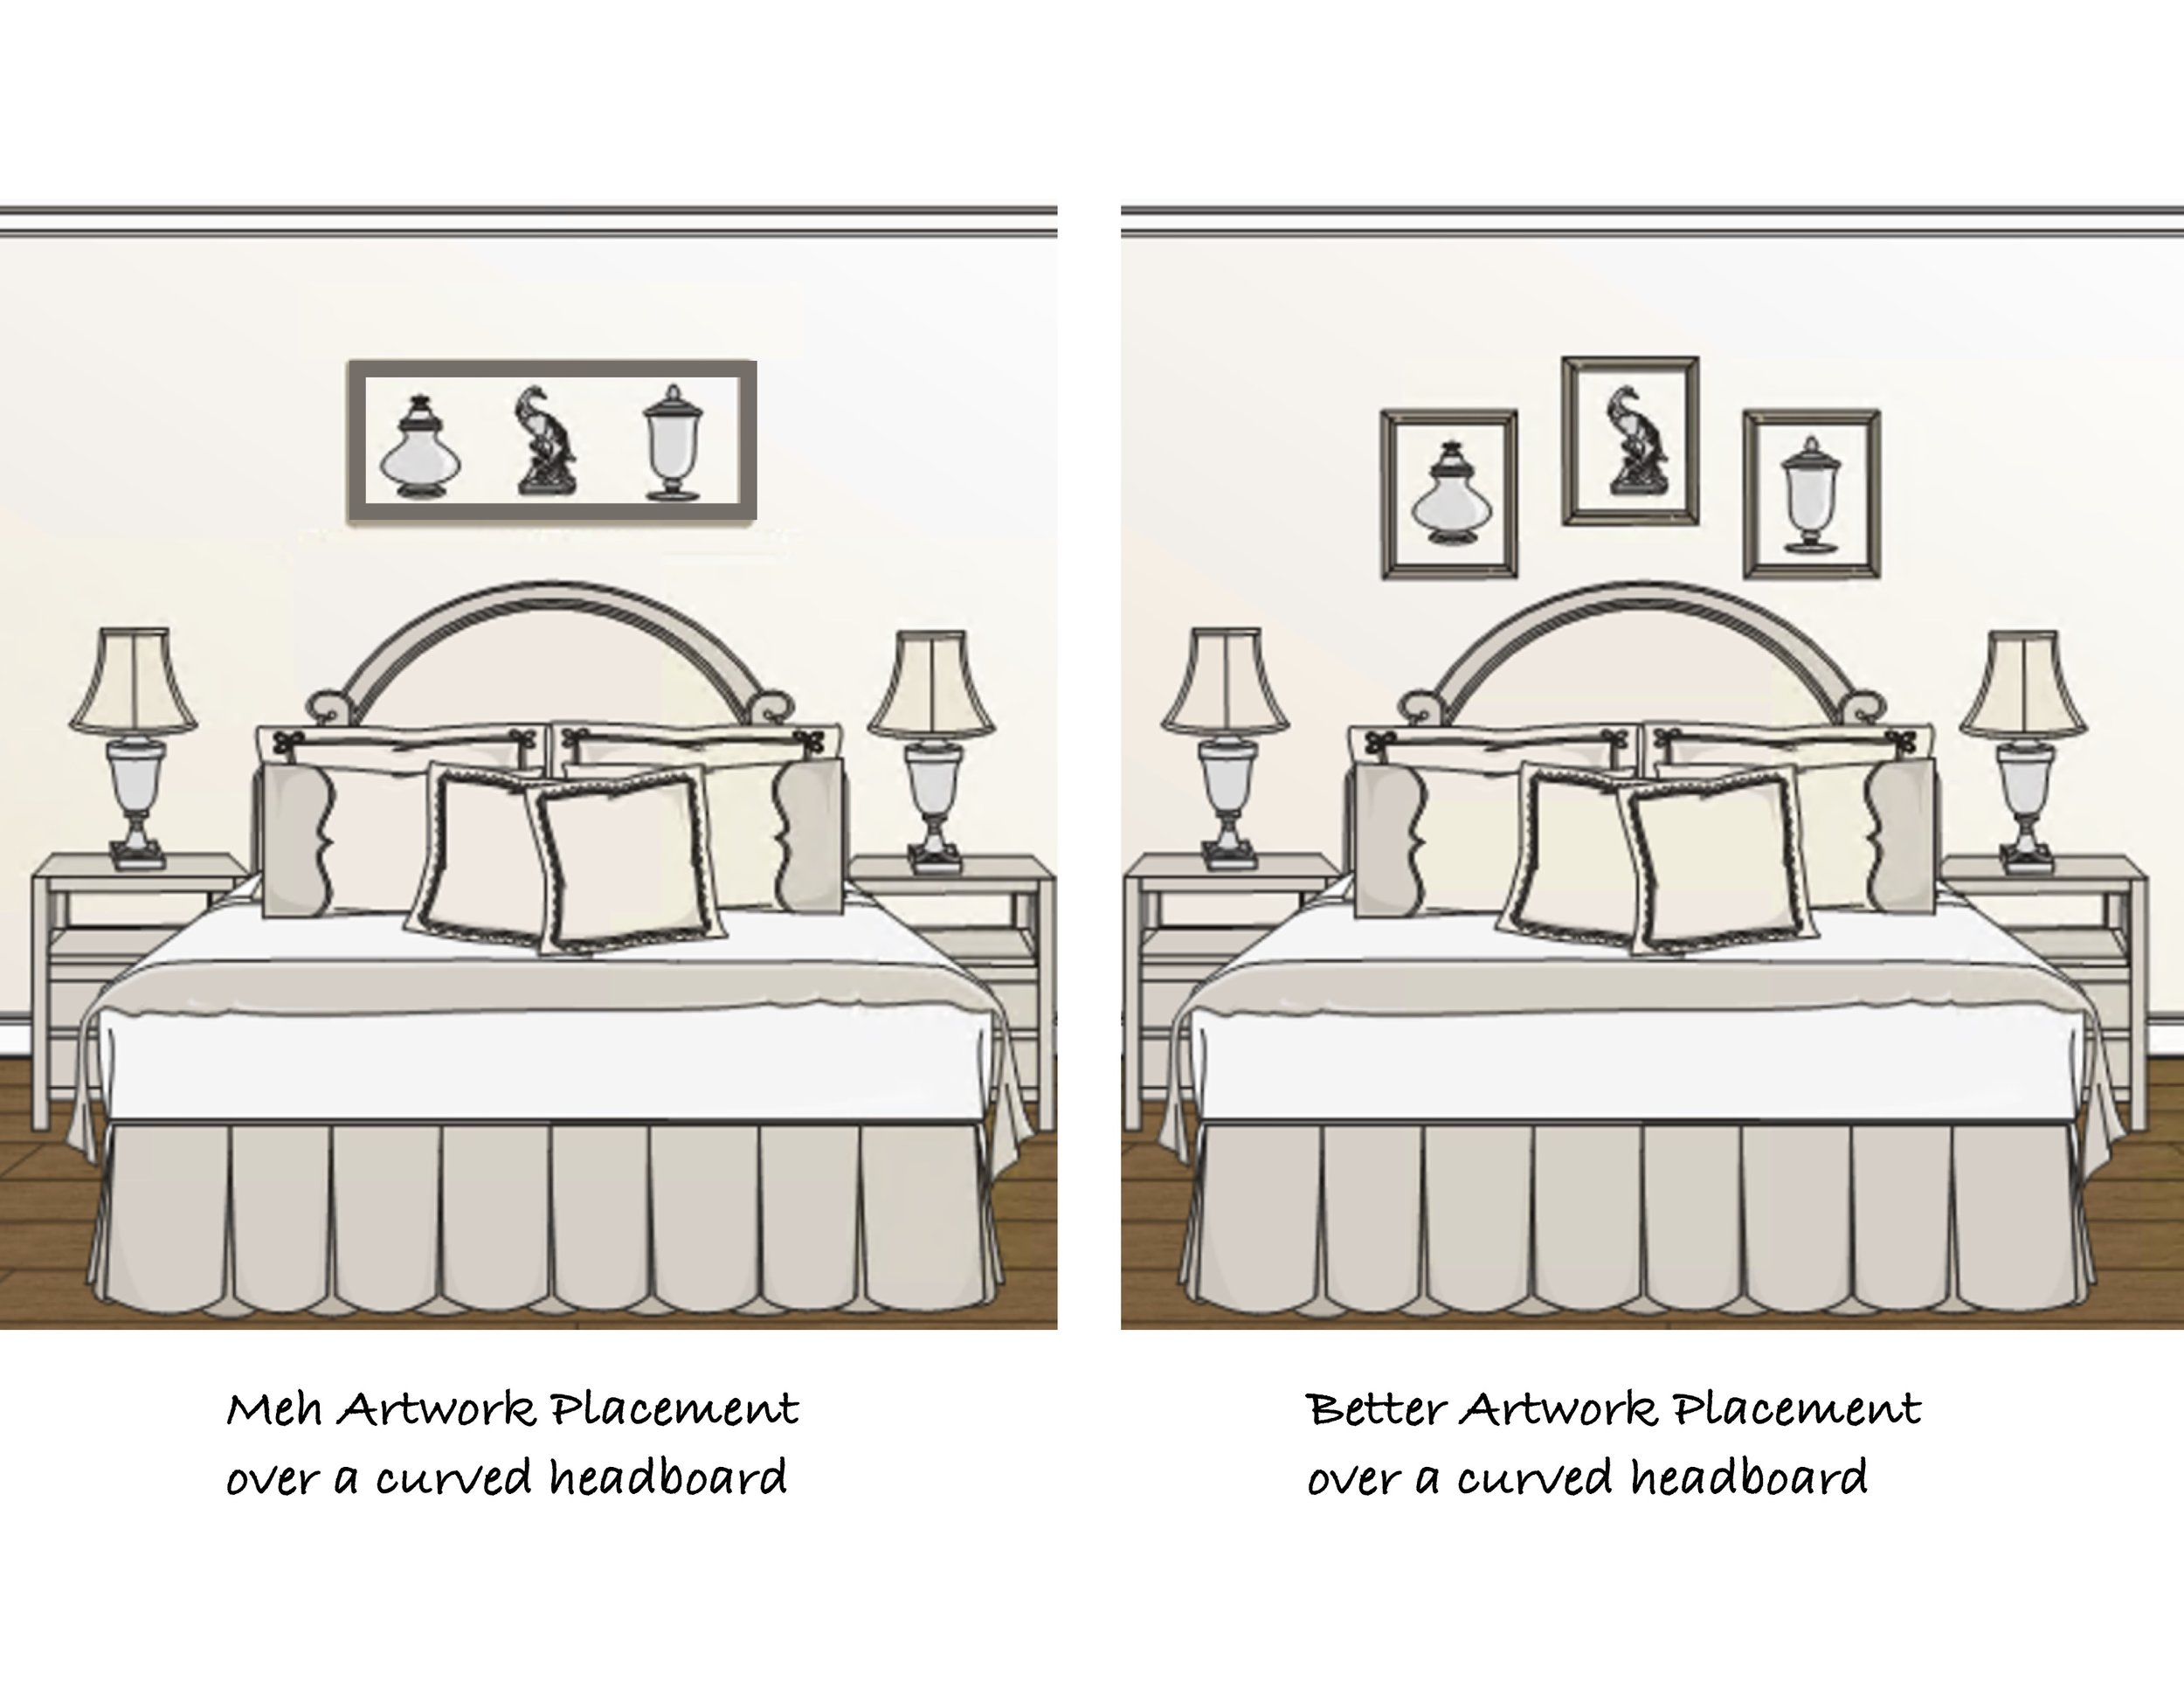 Artwork do's and don'ts over a curved headboard